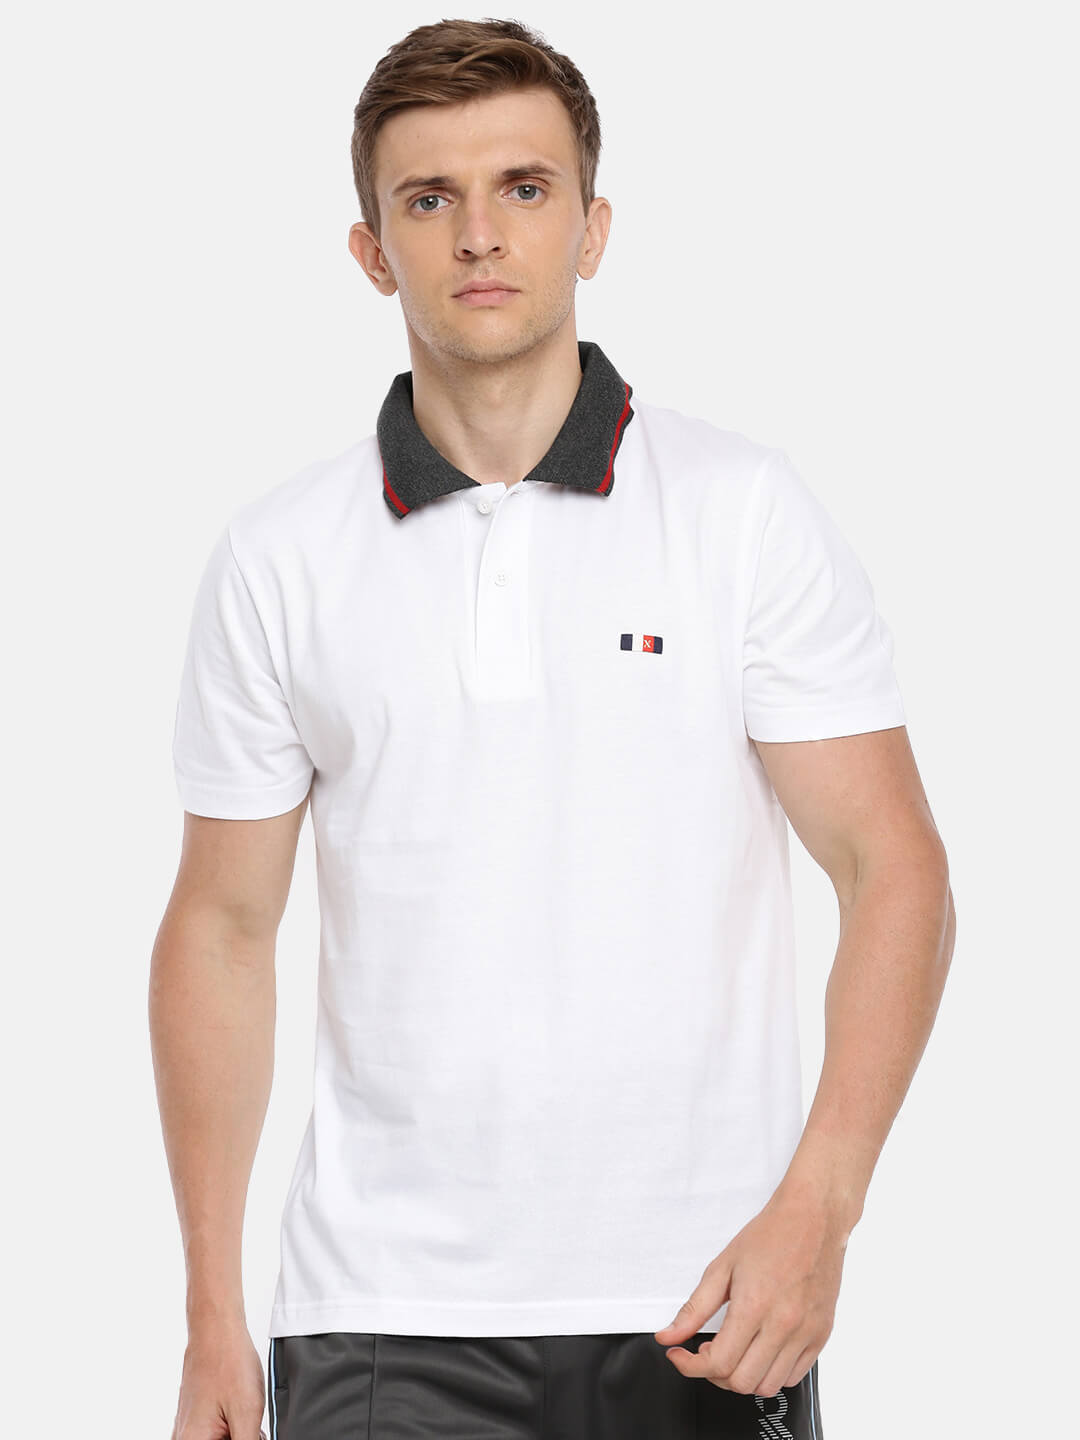 Polo T Shirts For Men - Premium Collar Half Sleeve T-Shirt - Front - White